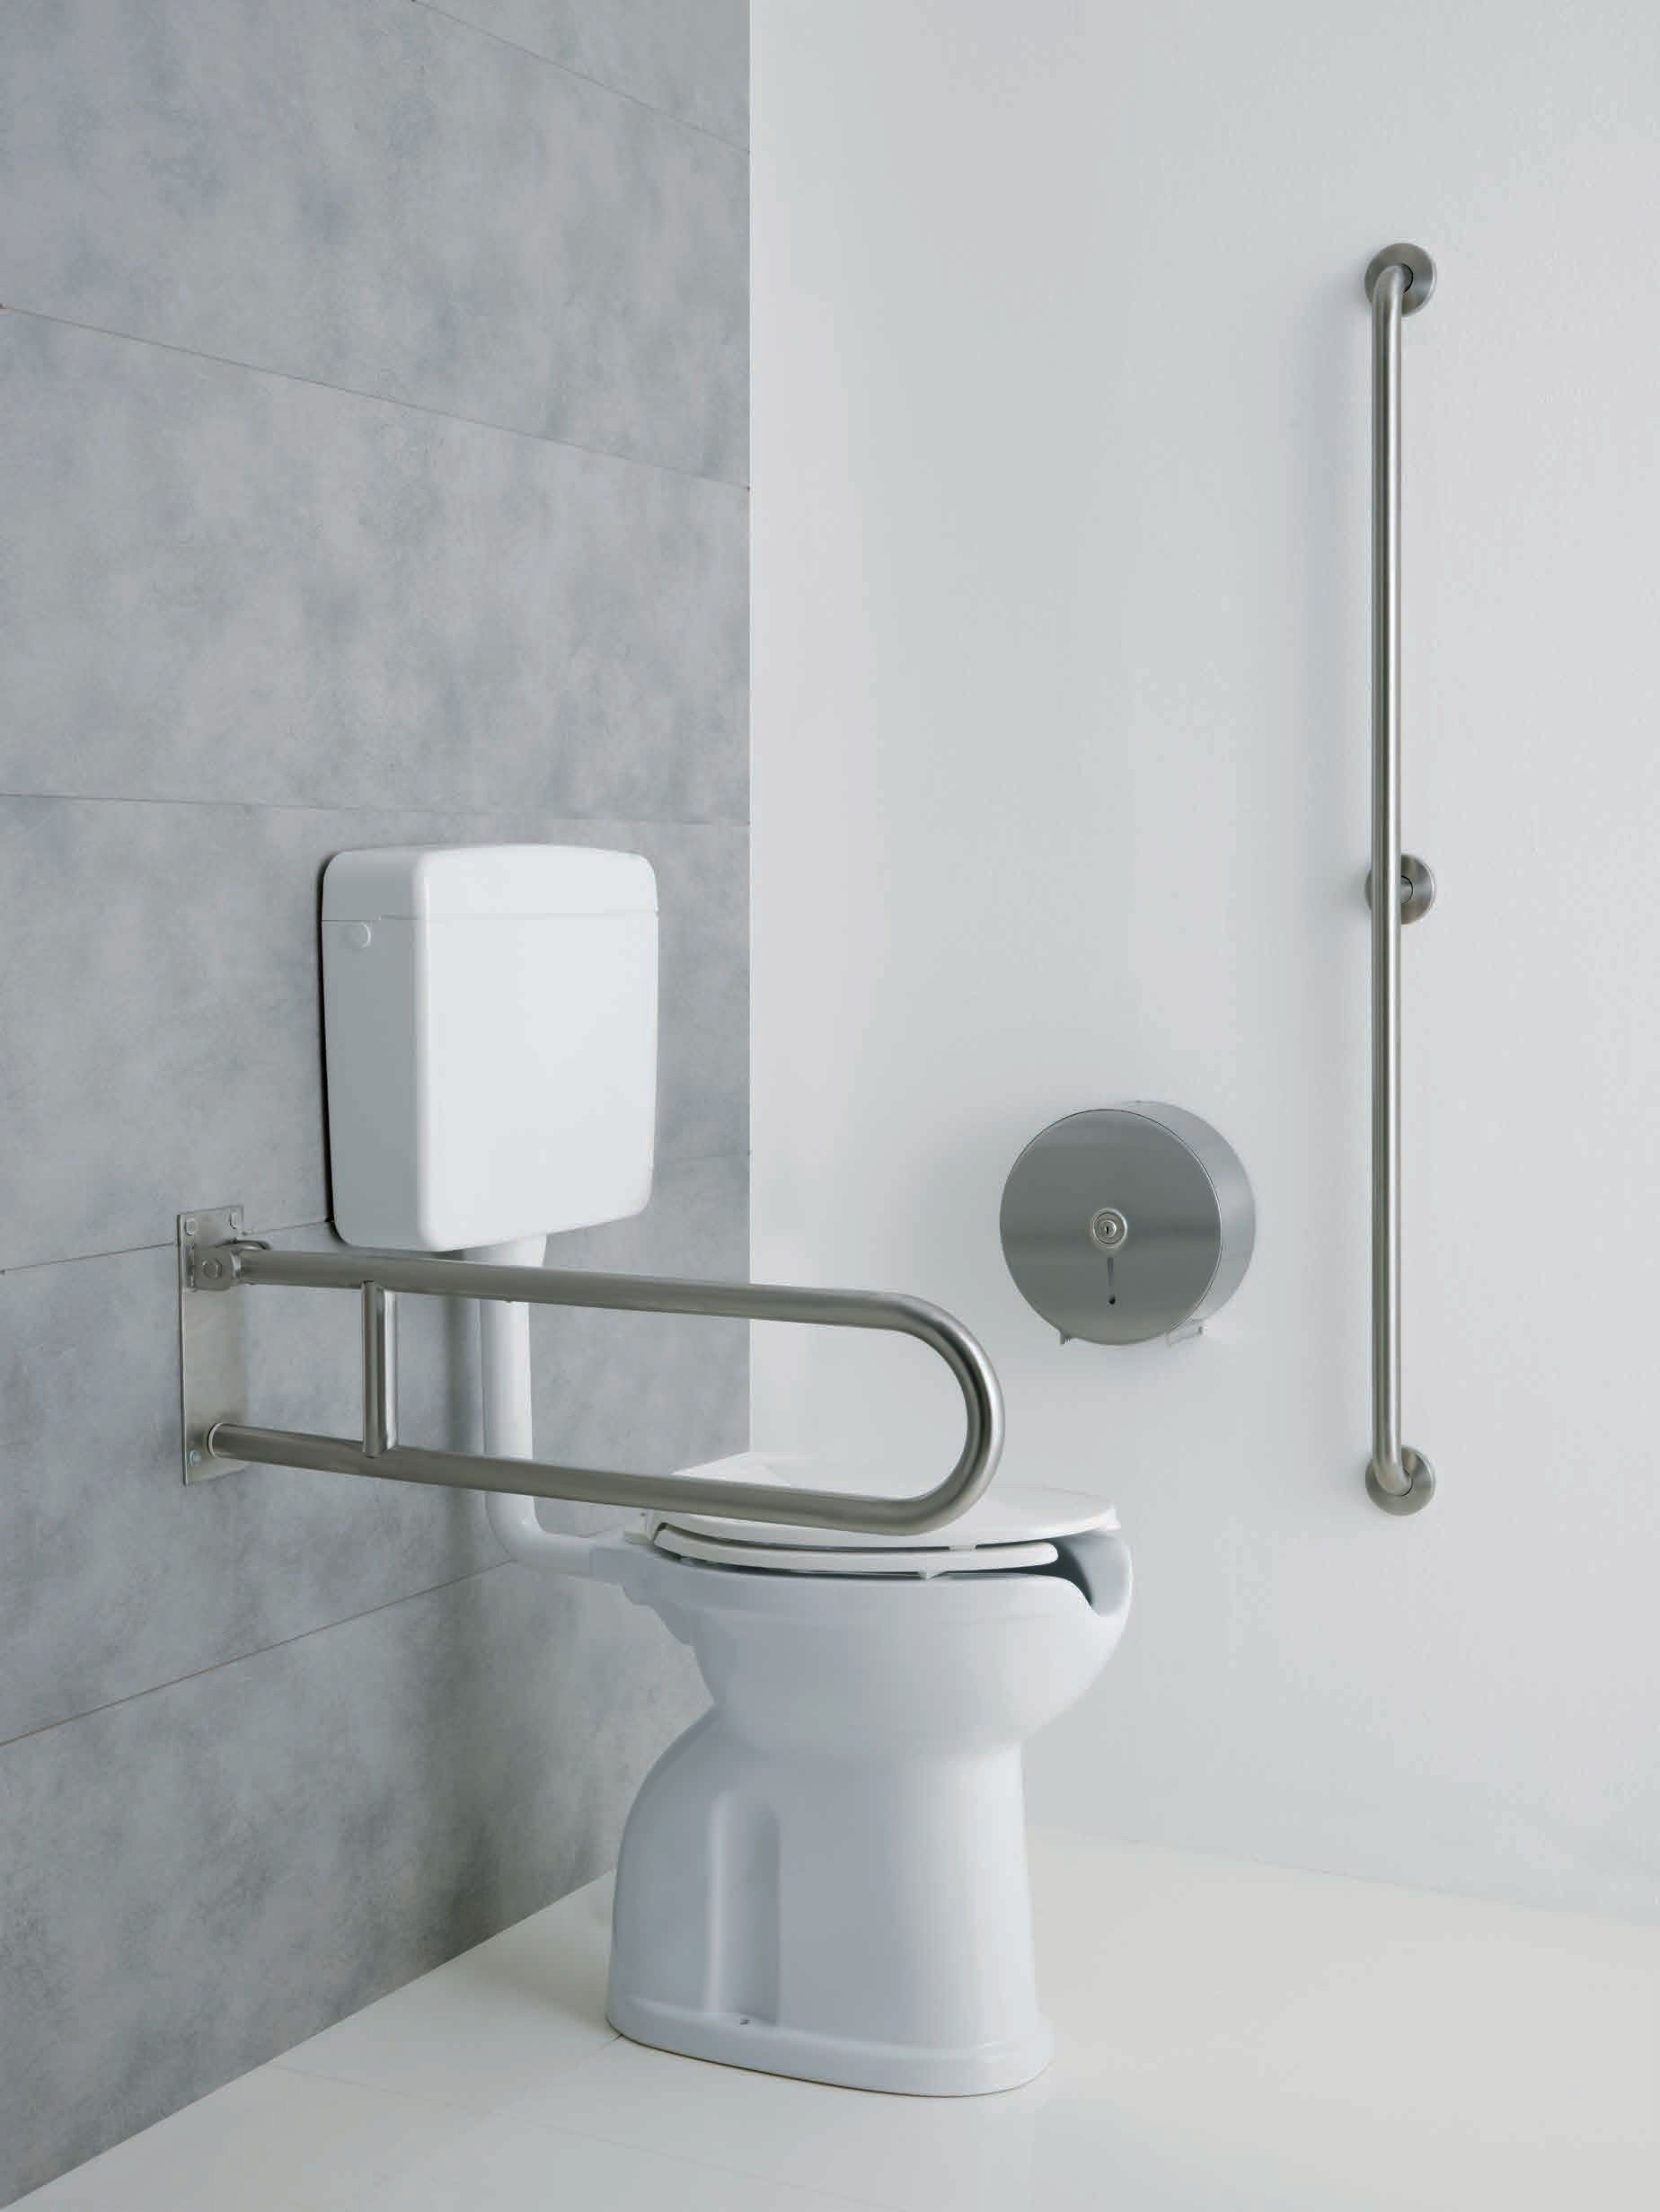 Merveilleux Read About Such Handicap Bathroom Accessories As Grab Bars And Toilet  Safety Rails So That You Can Learn How To Make Your Bathroom Safer Place.